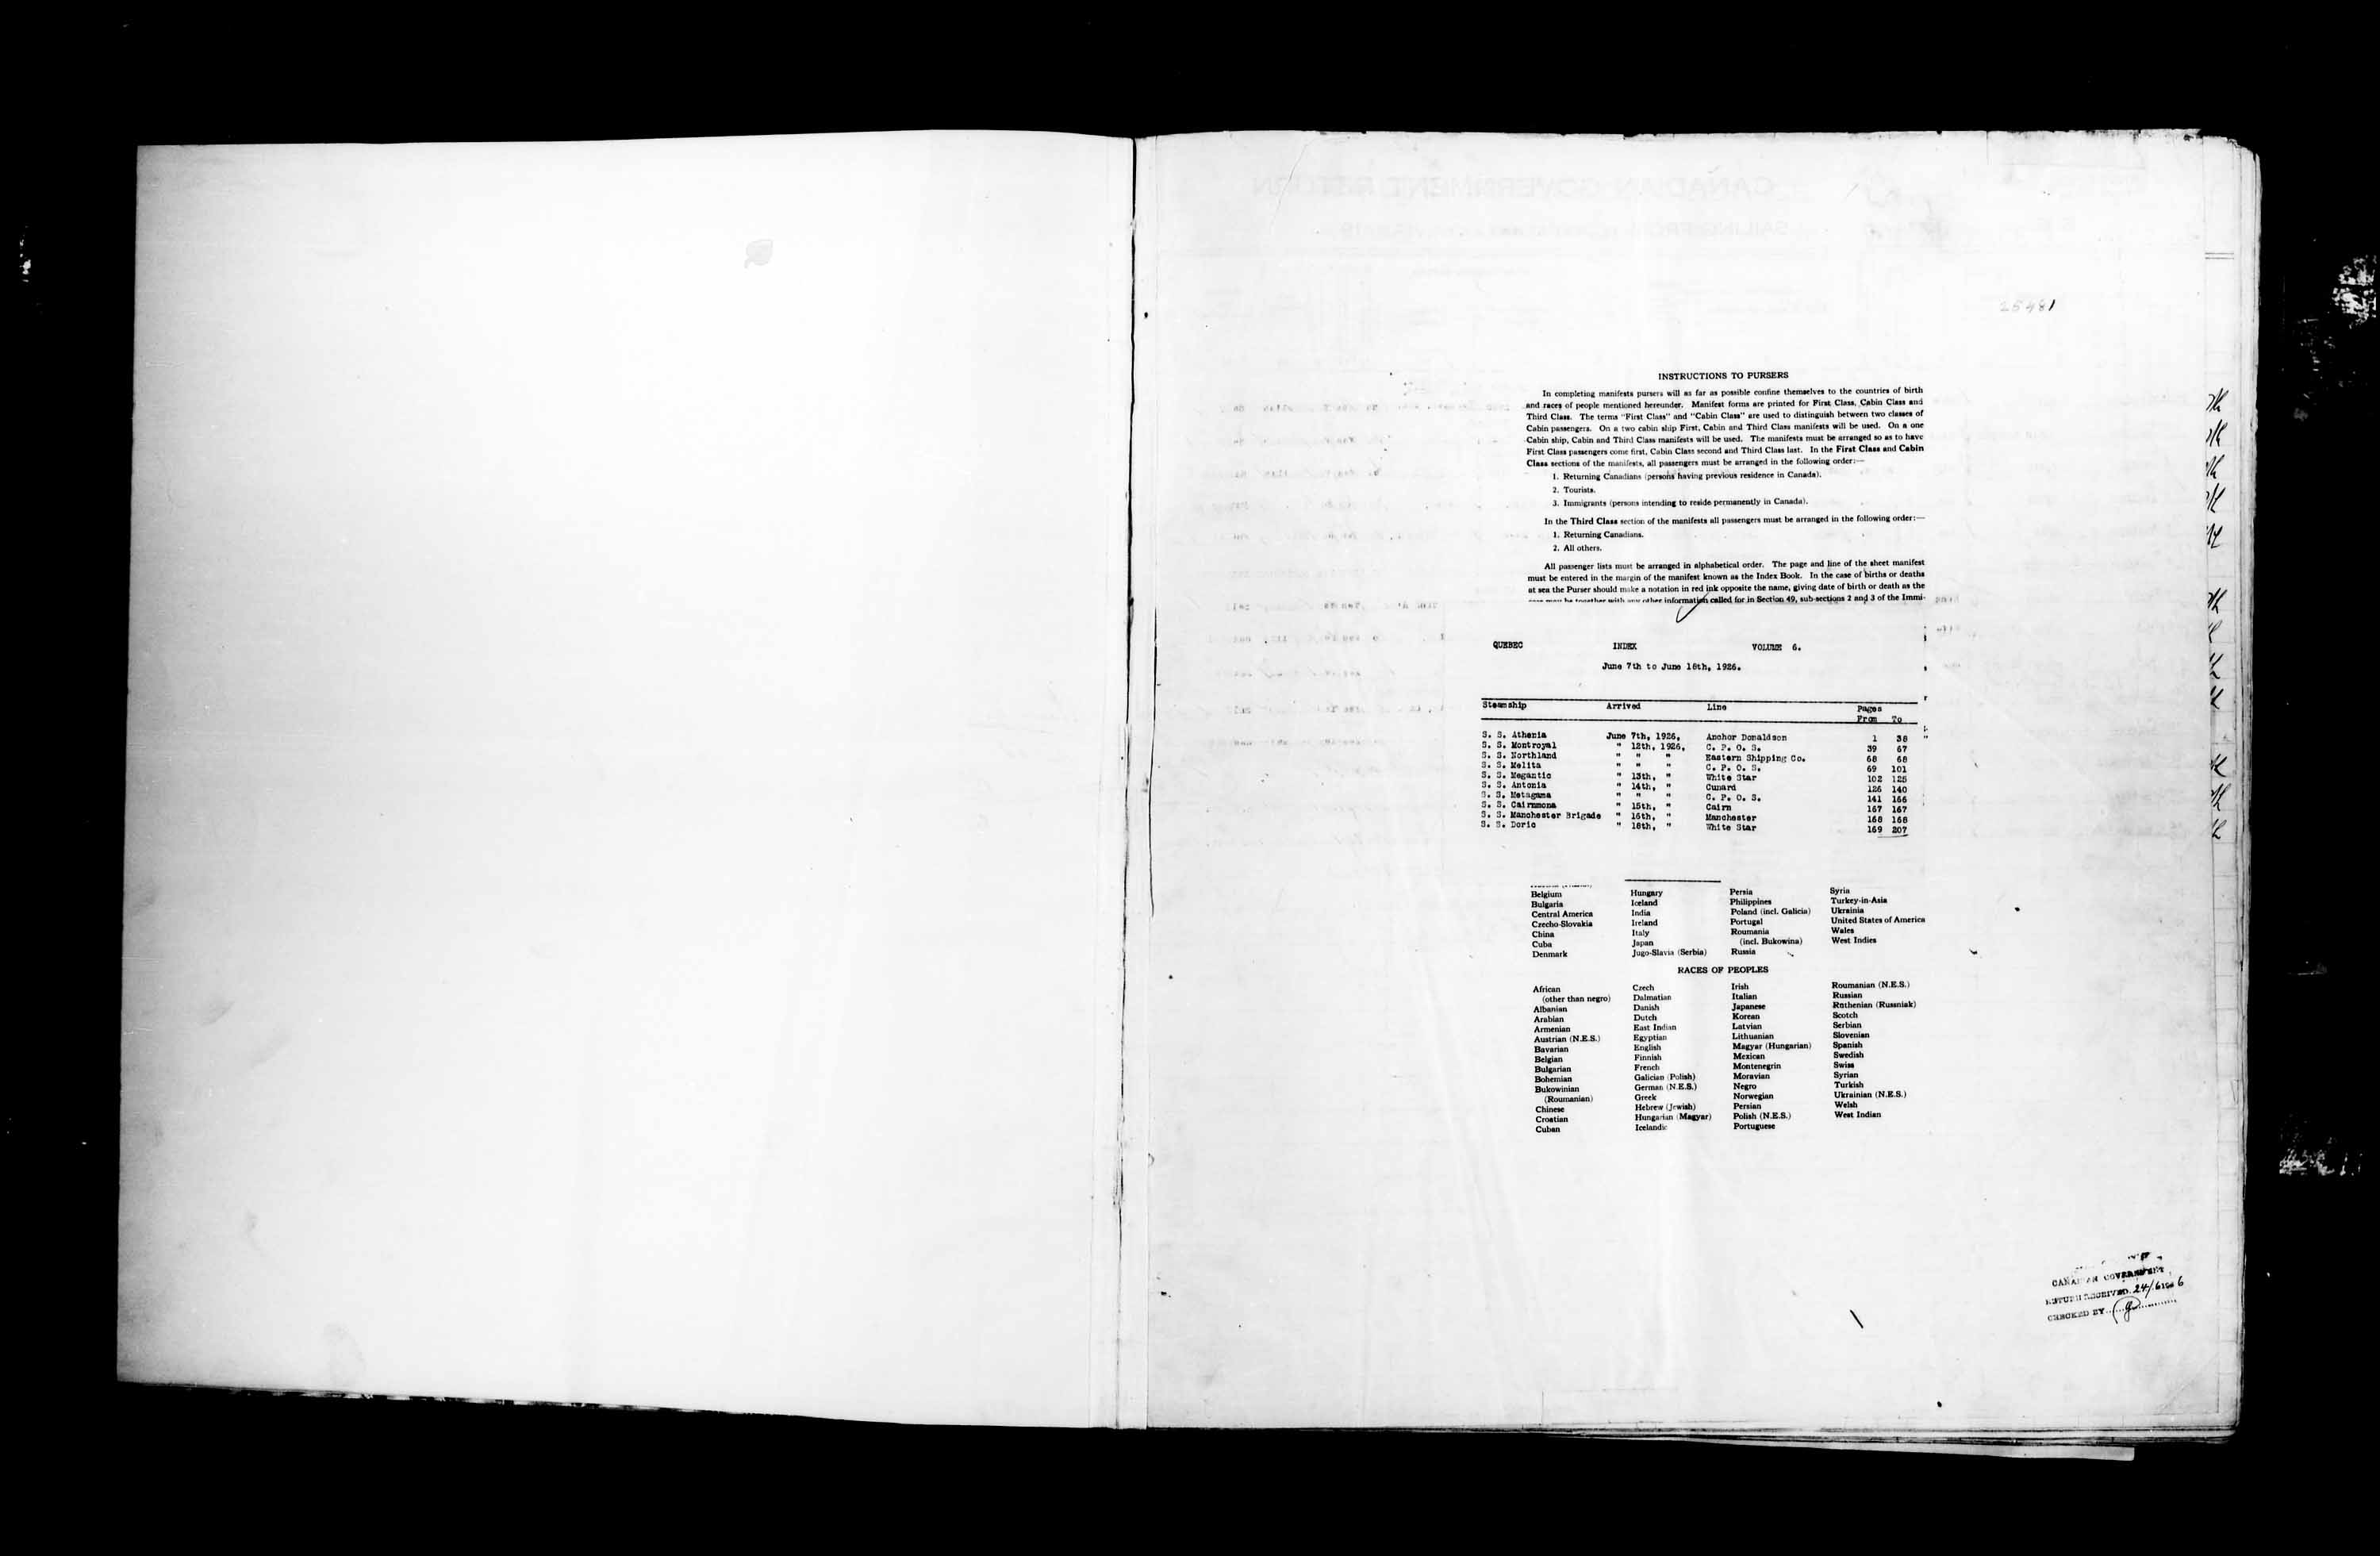 Title: Passenger Lists: Quebec City (1925-1935) - Mikan Number: 134839 - Microform: t-14723